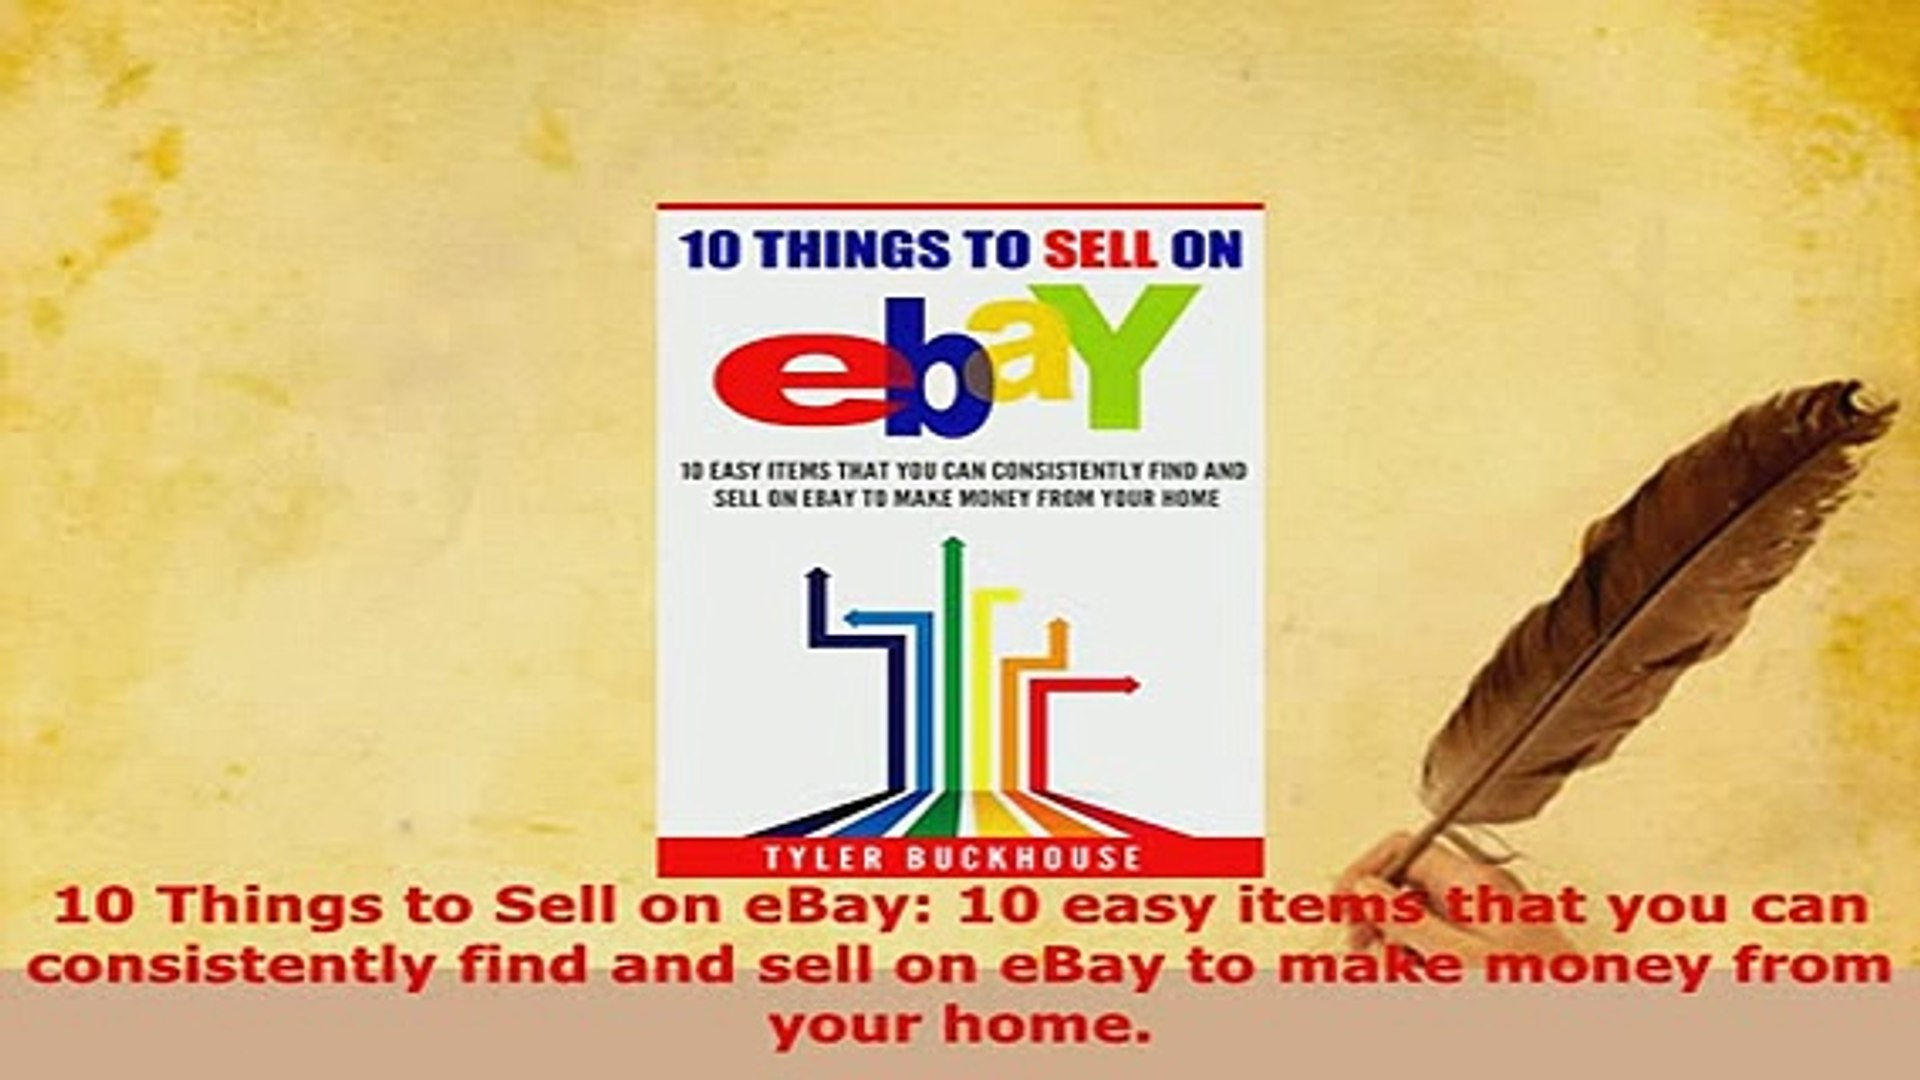 Pdf 10 Things To Sell On Ebay 10 Easy Items That You Can Consistently Find And Sell On Ebay Download Online Video Dailymotion